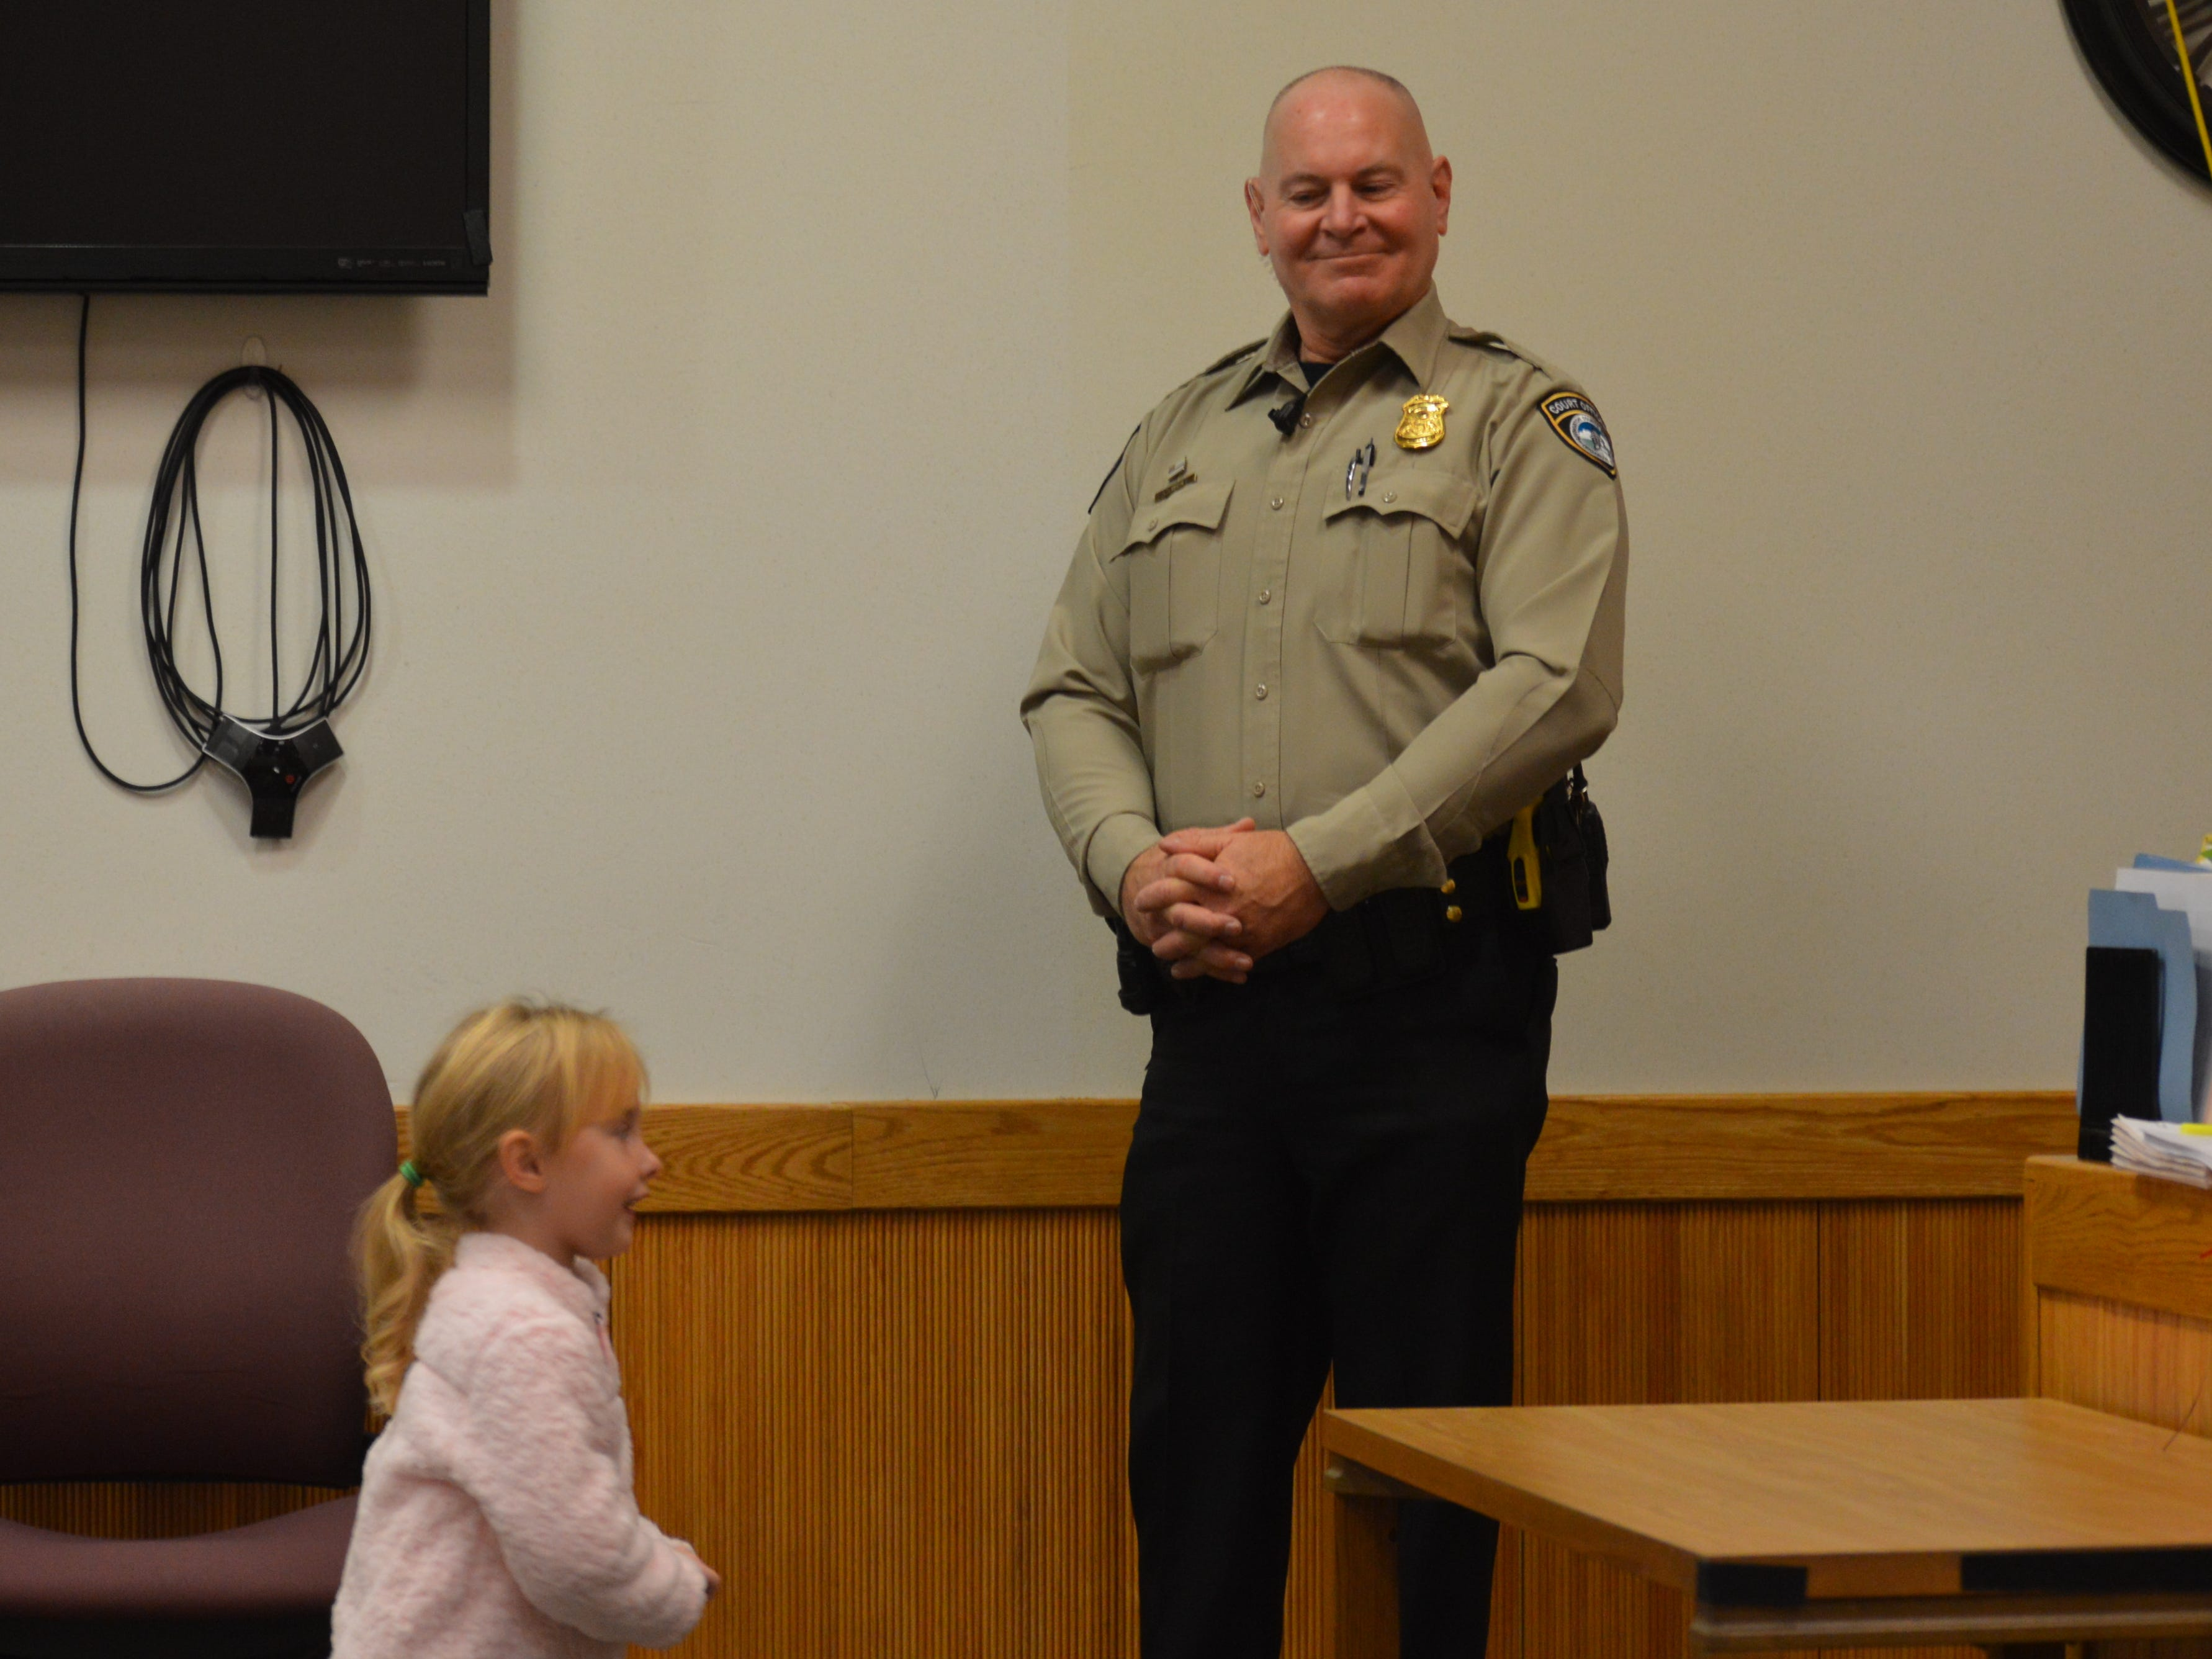 Layla Drew, newly adopted by her father runs to the judge's bench to get her stuffed bear. She was adopted Nov. 20, 2018.